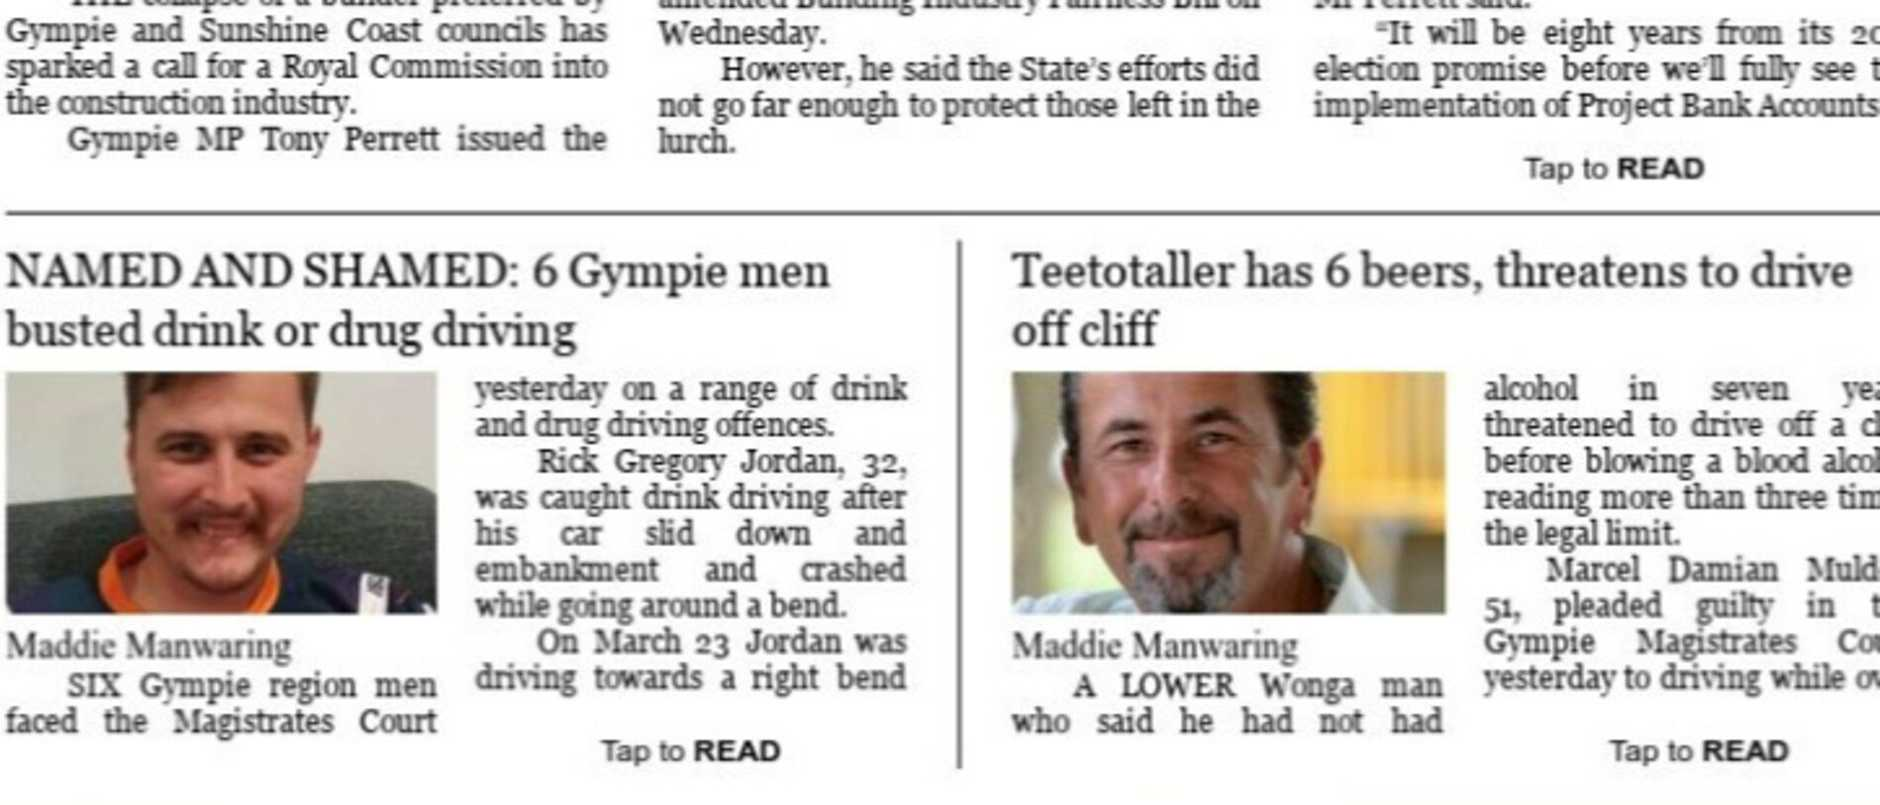 First DPE (digital edition) of digital only GYmpie Times July 17, 2020